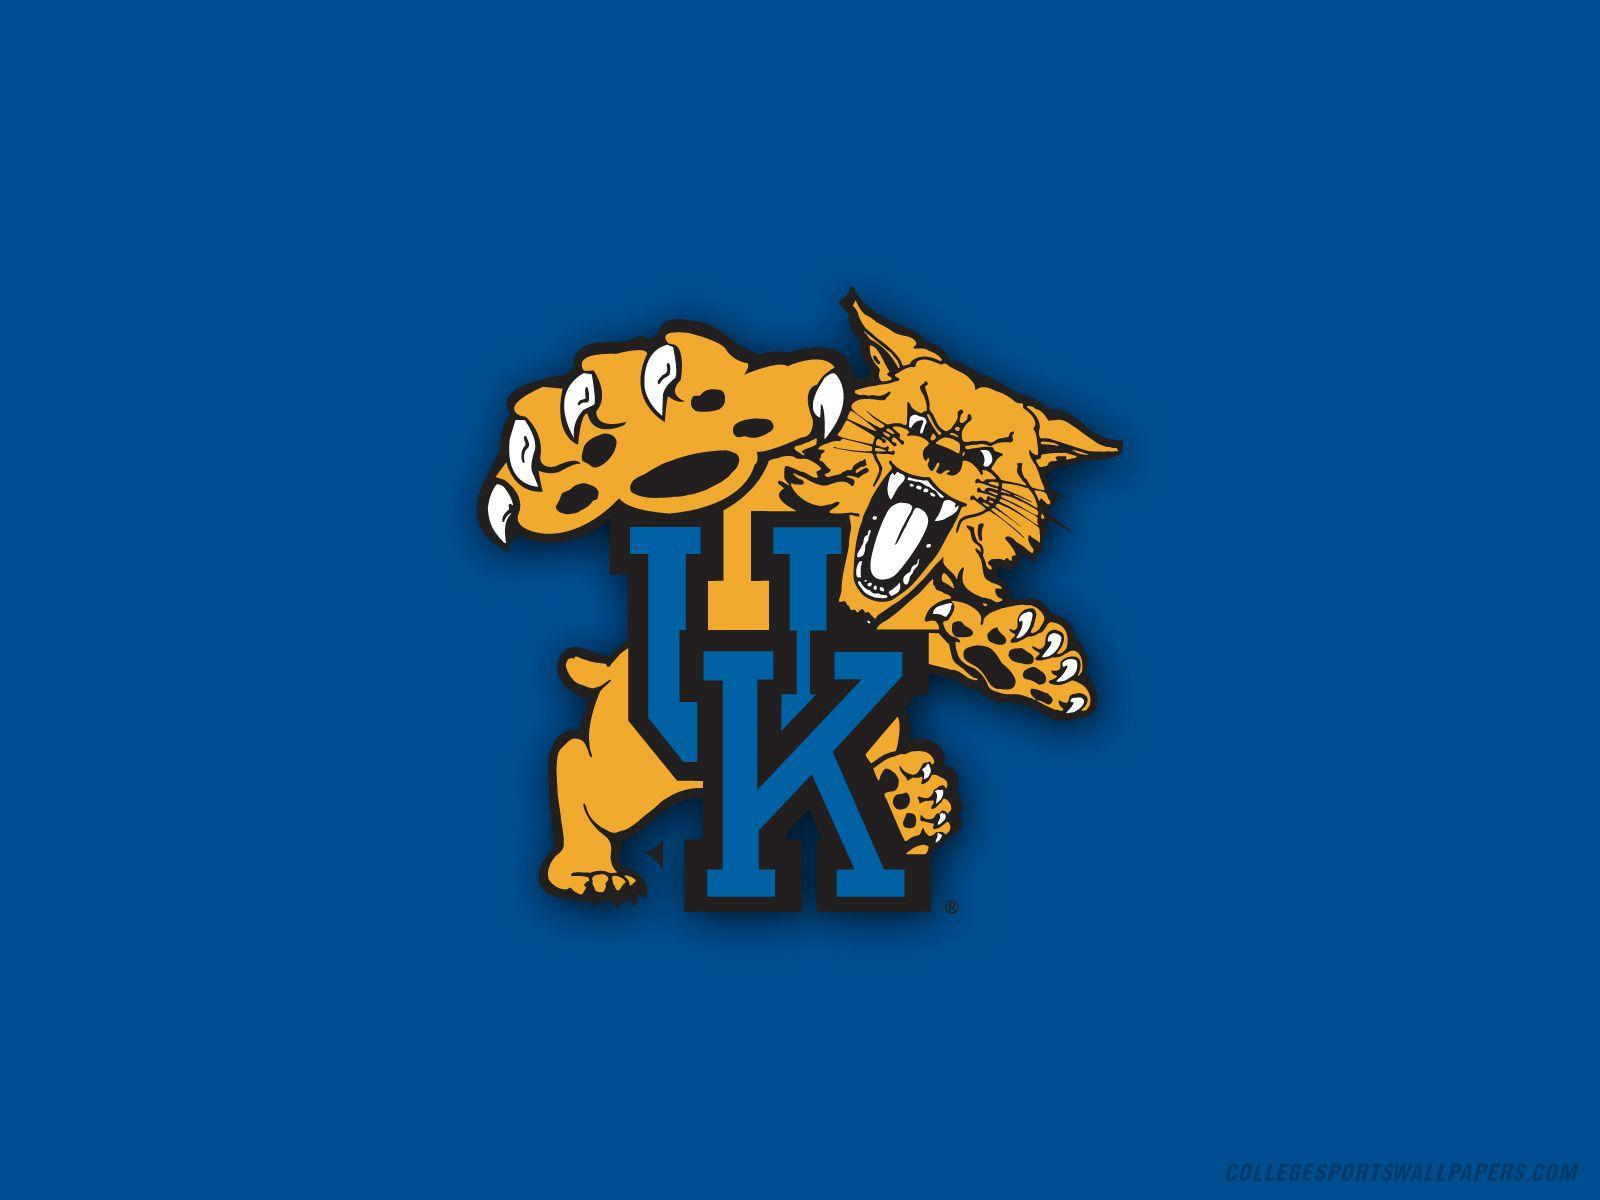 Kentucky Wildcats image Uk logo HD wallpapers and backgrounds